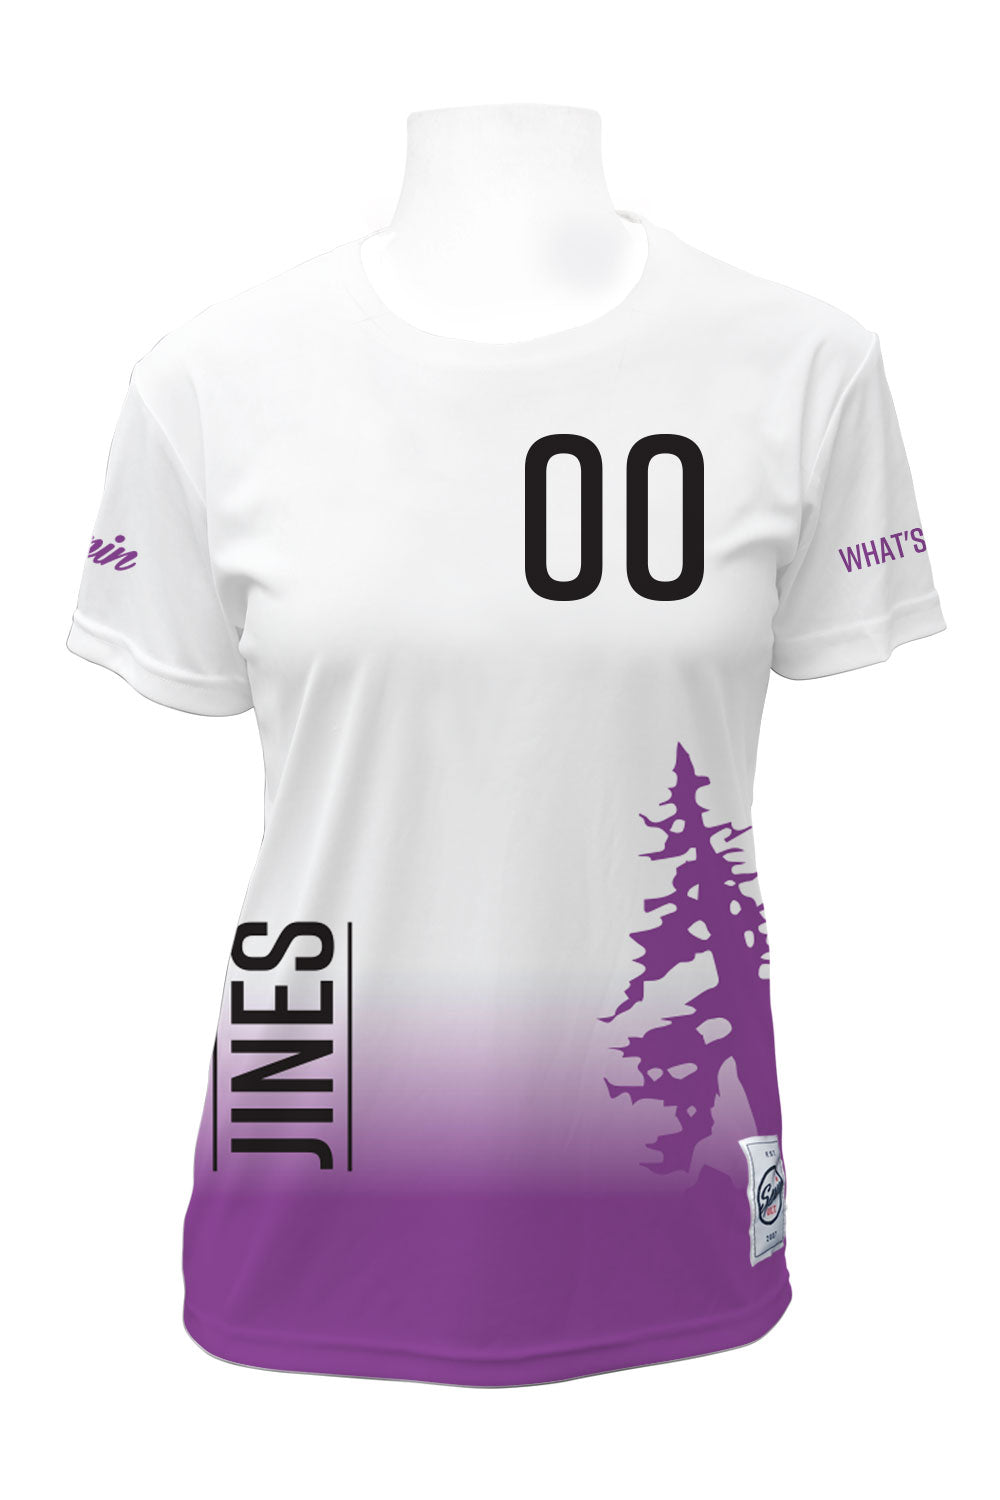 Jines in the Pines Full Sub Short Sleeve Jersey